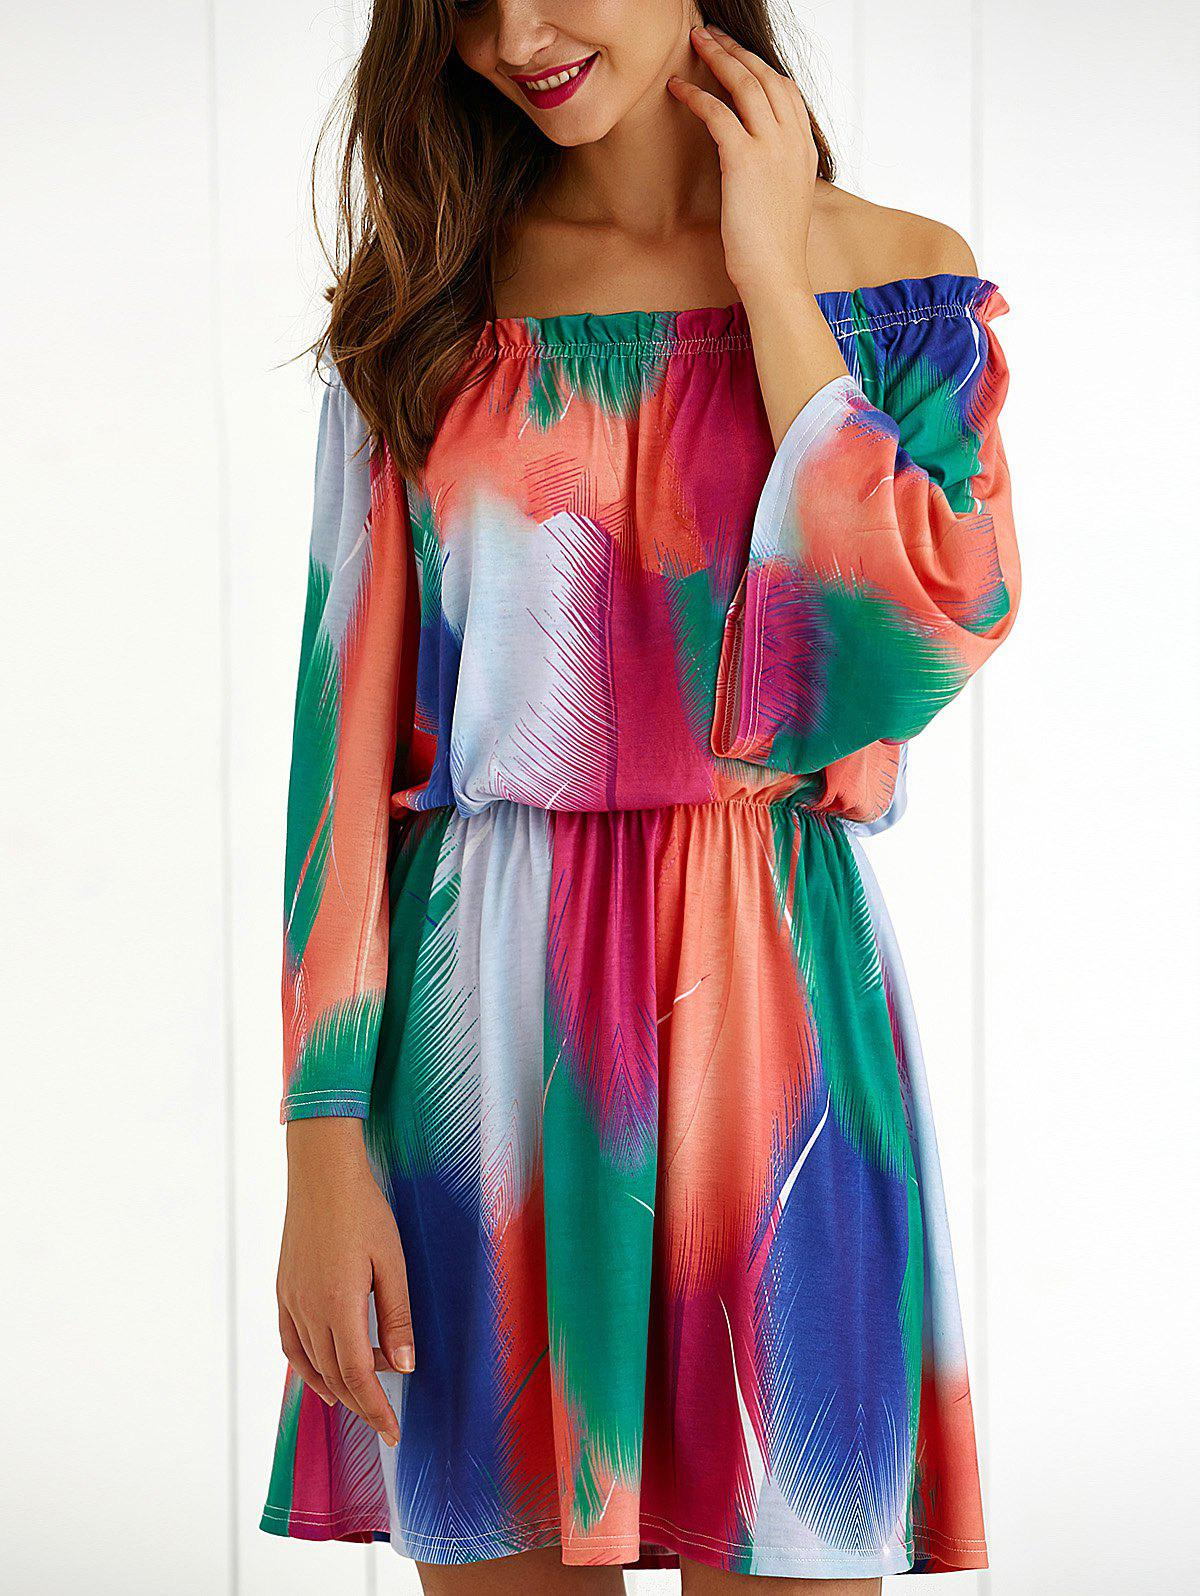 Off The Shoulder 3/4 Sleeve Colorful Dress